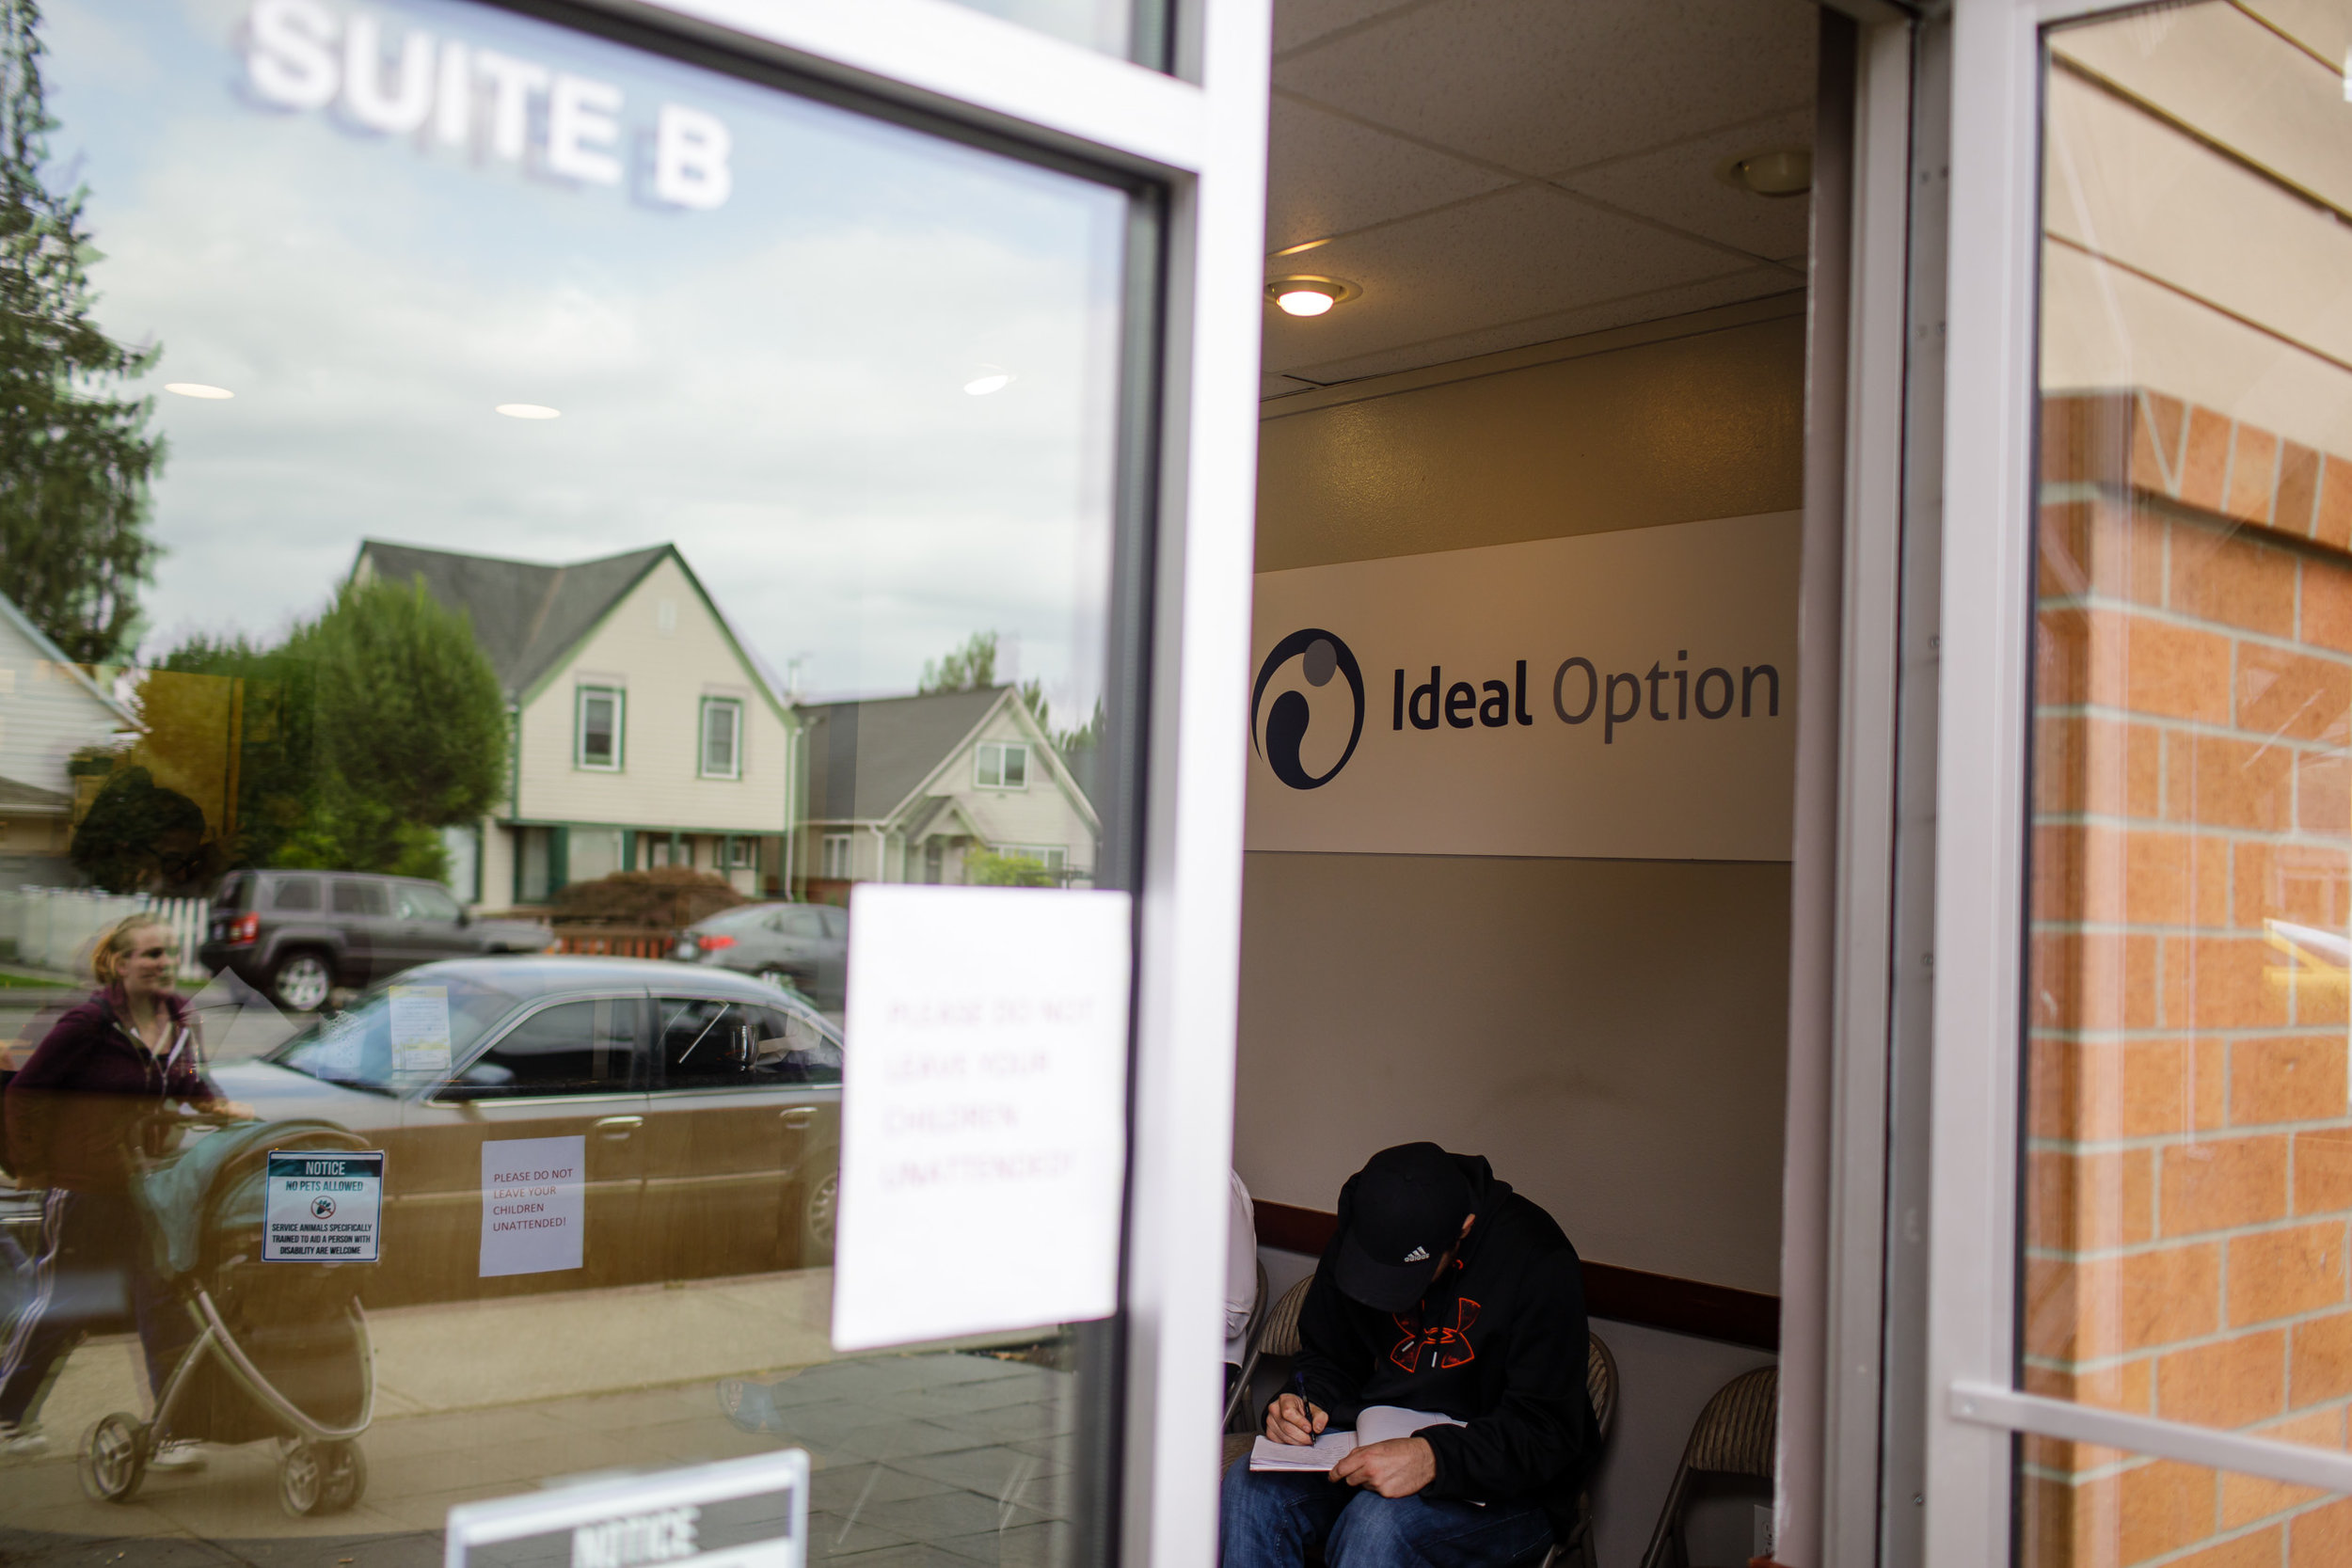 Ideal Option. A Suboxone clinic in Everett, Washington.   CREDIT: LEAH NASH FOR FINDING FIXES »